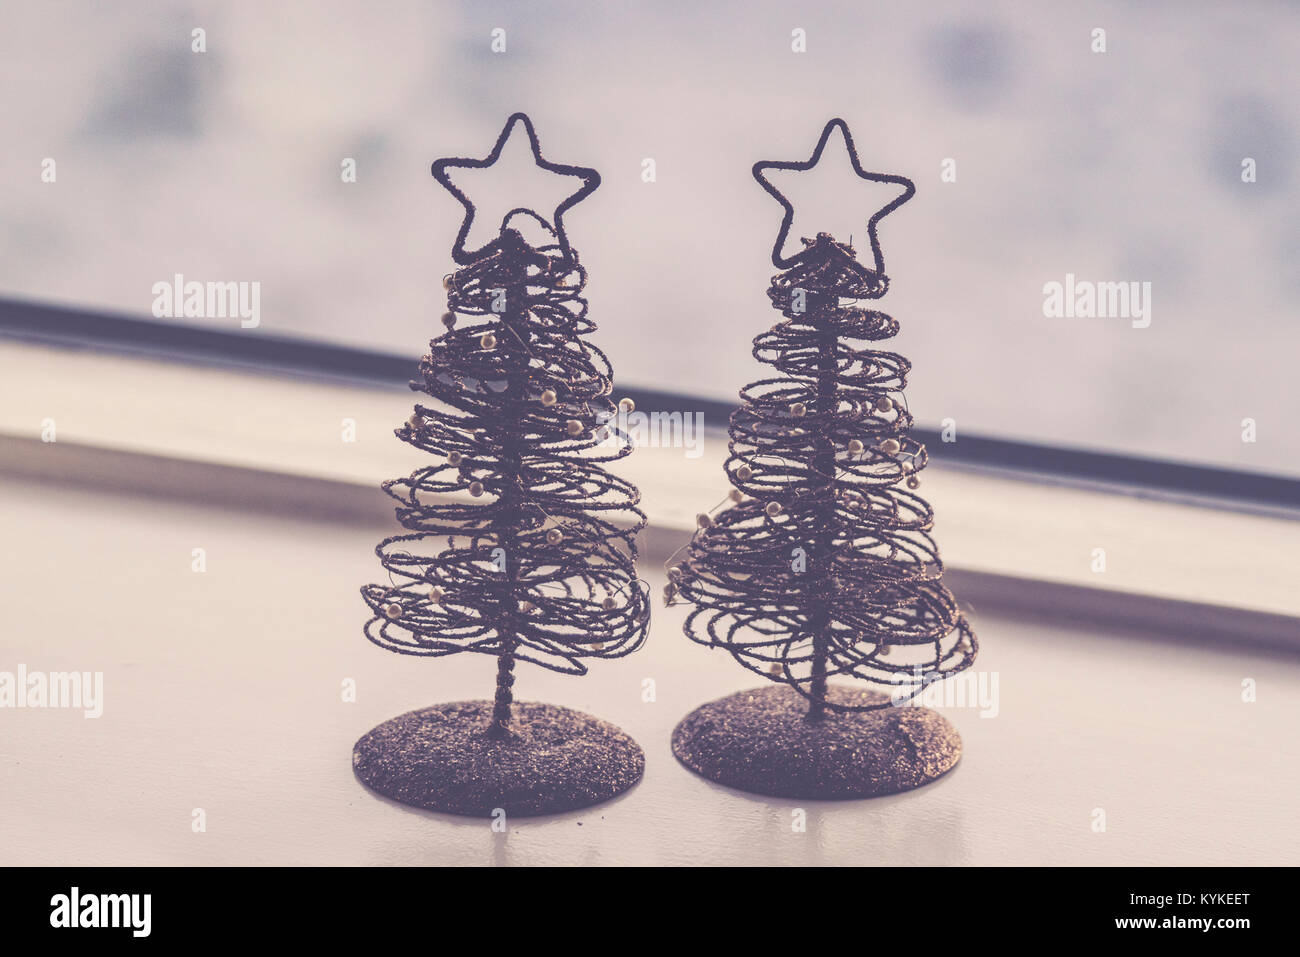 Two small decorative Christmas trees with glitter and stars in an ornament at Xmas - Stock Image